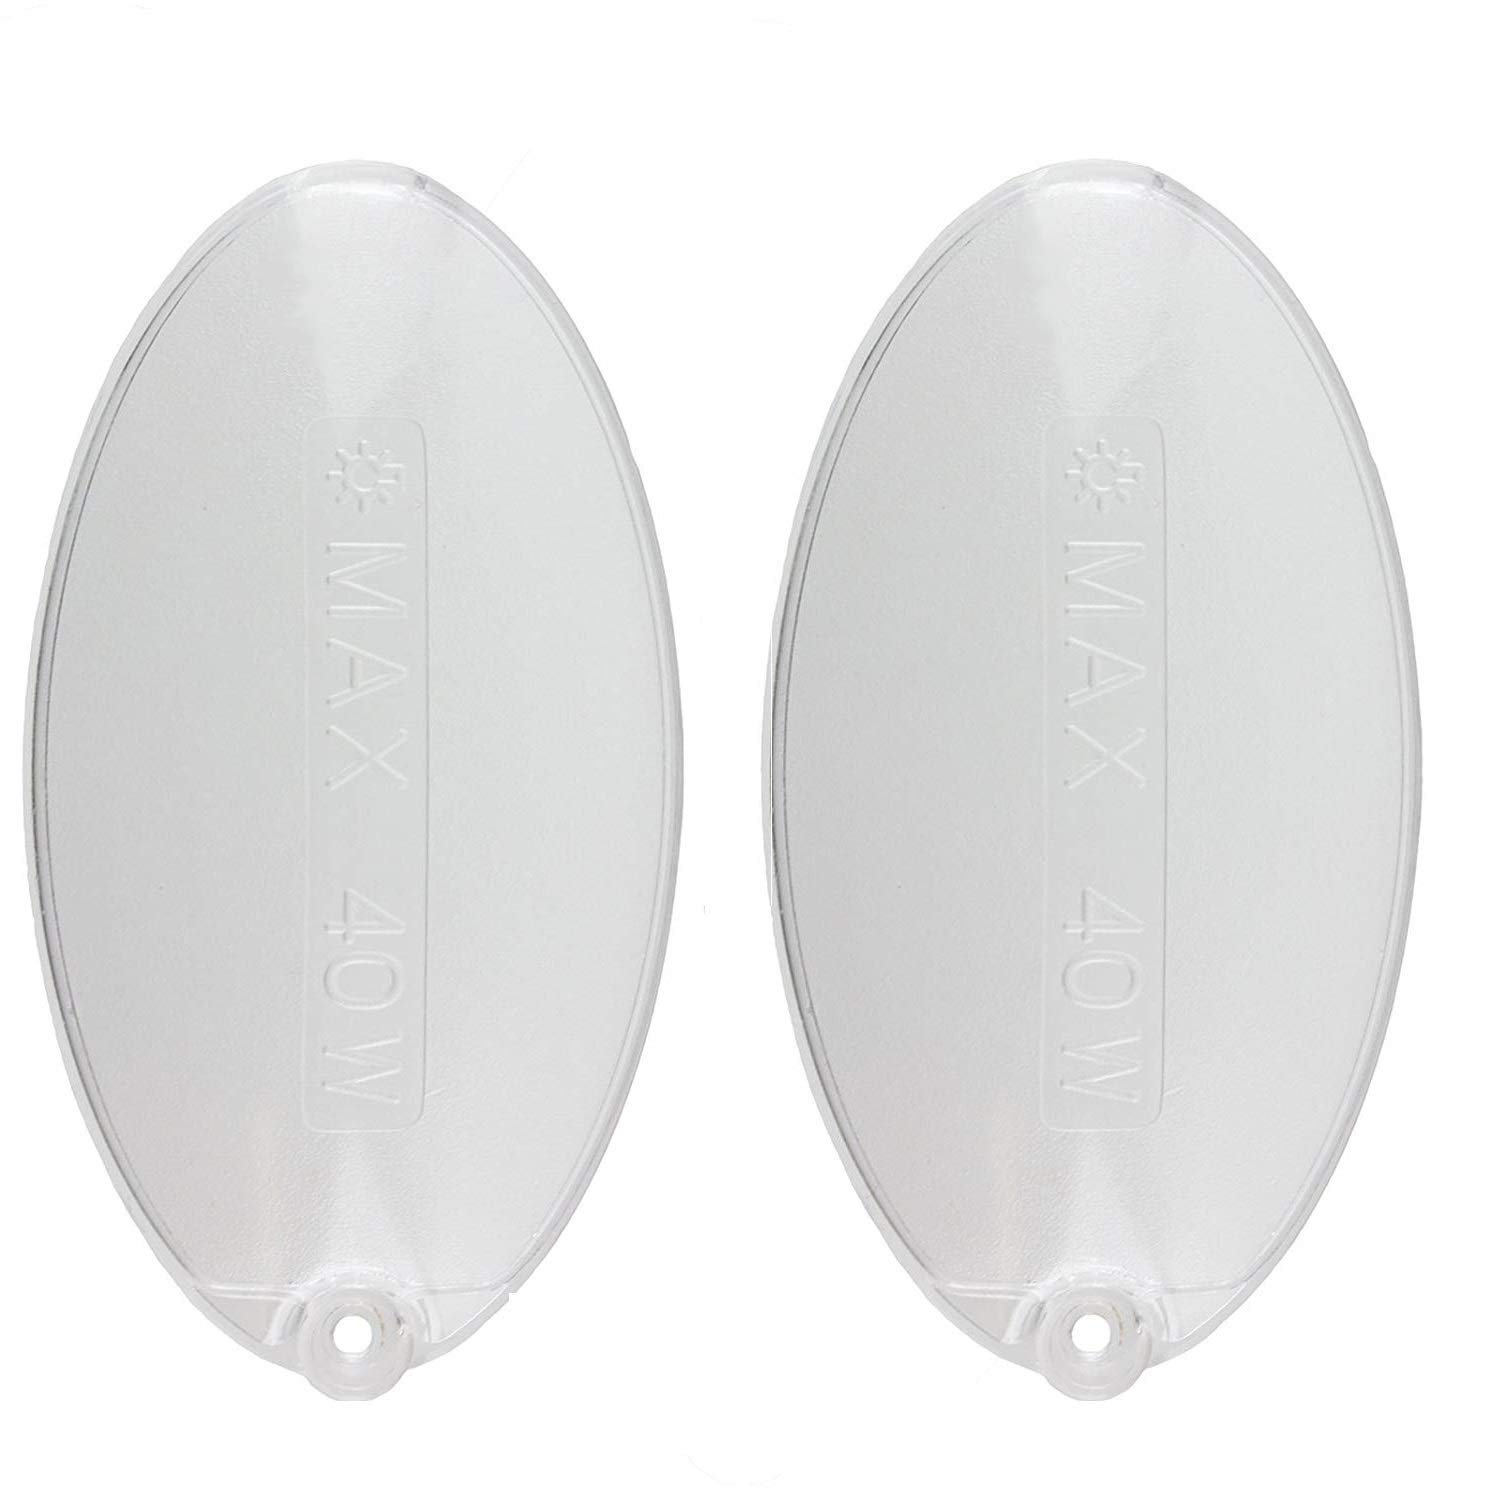 RELIAPART Universal Electrolux, Indesit, Whirlpool, Smeg Oval-Shaped Cooker Hood Bulb Light Diffuser Cover Panel 1330058595 (100mm x 52mm, Pack of 2) Compatible